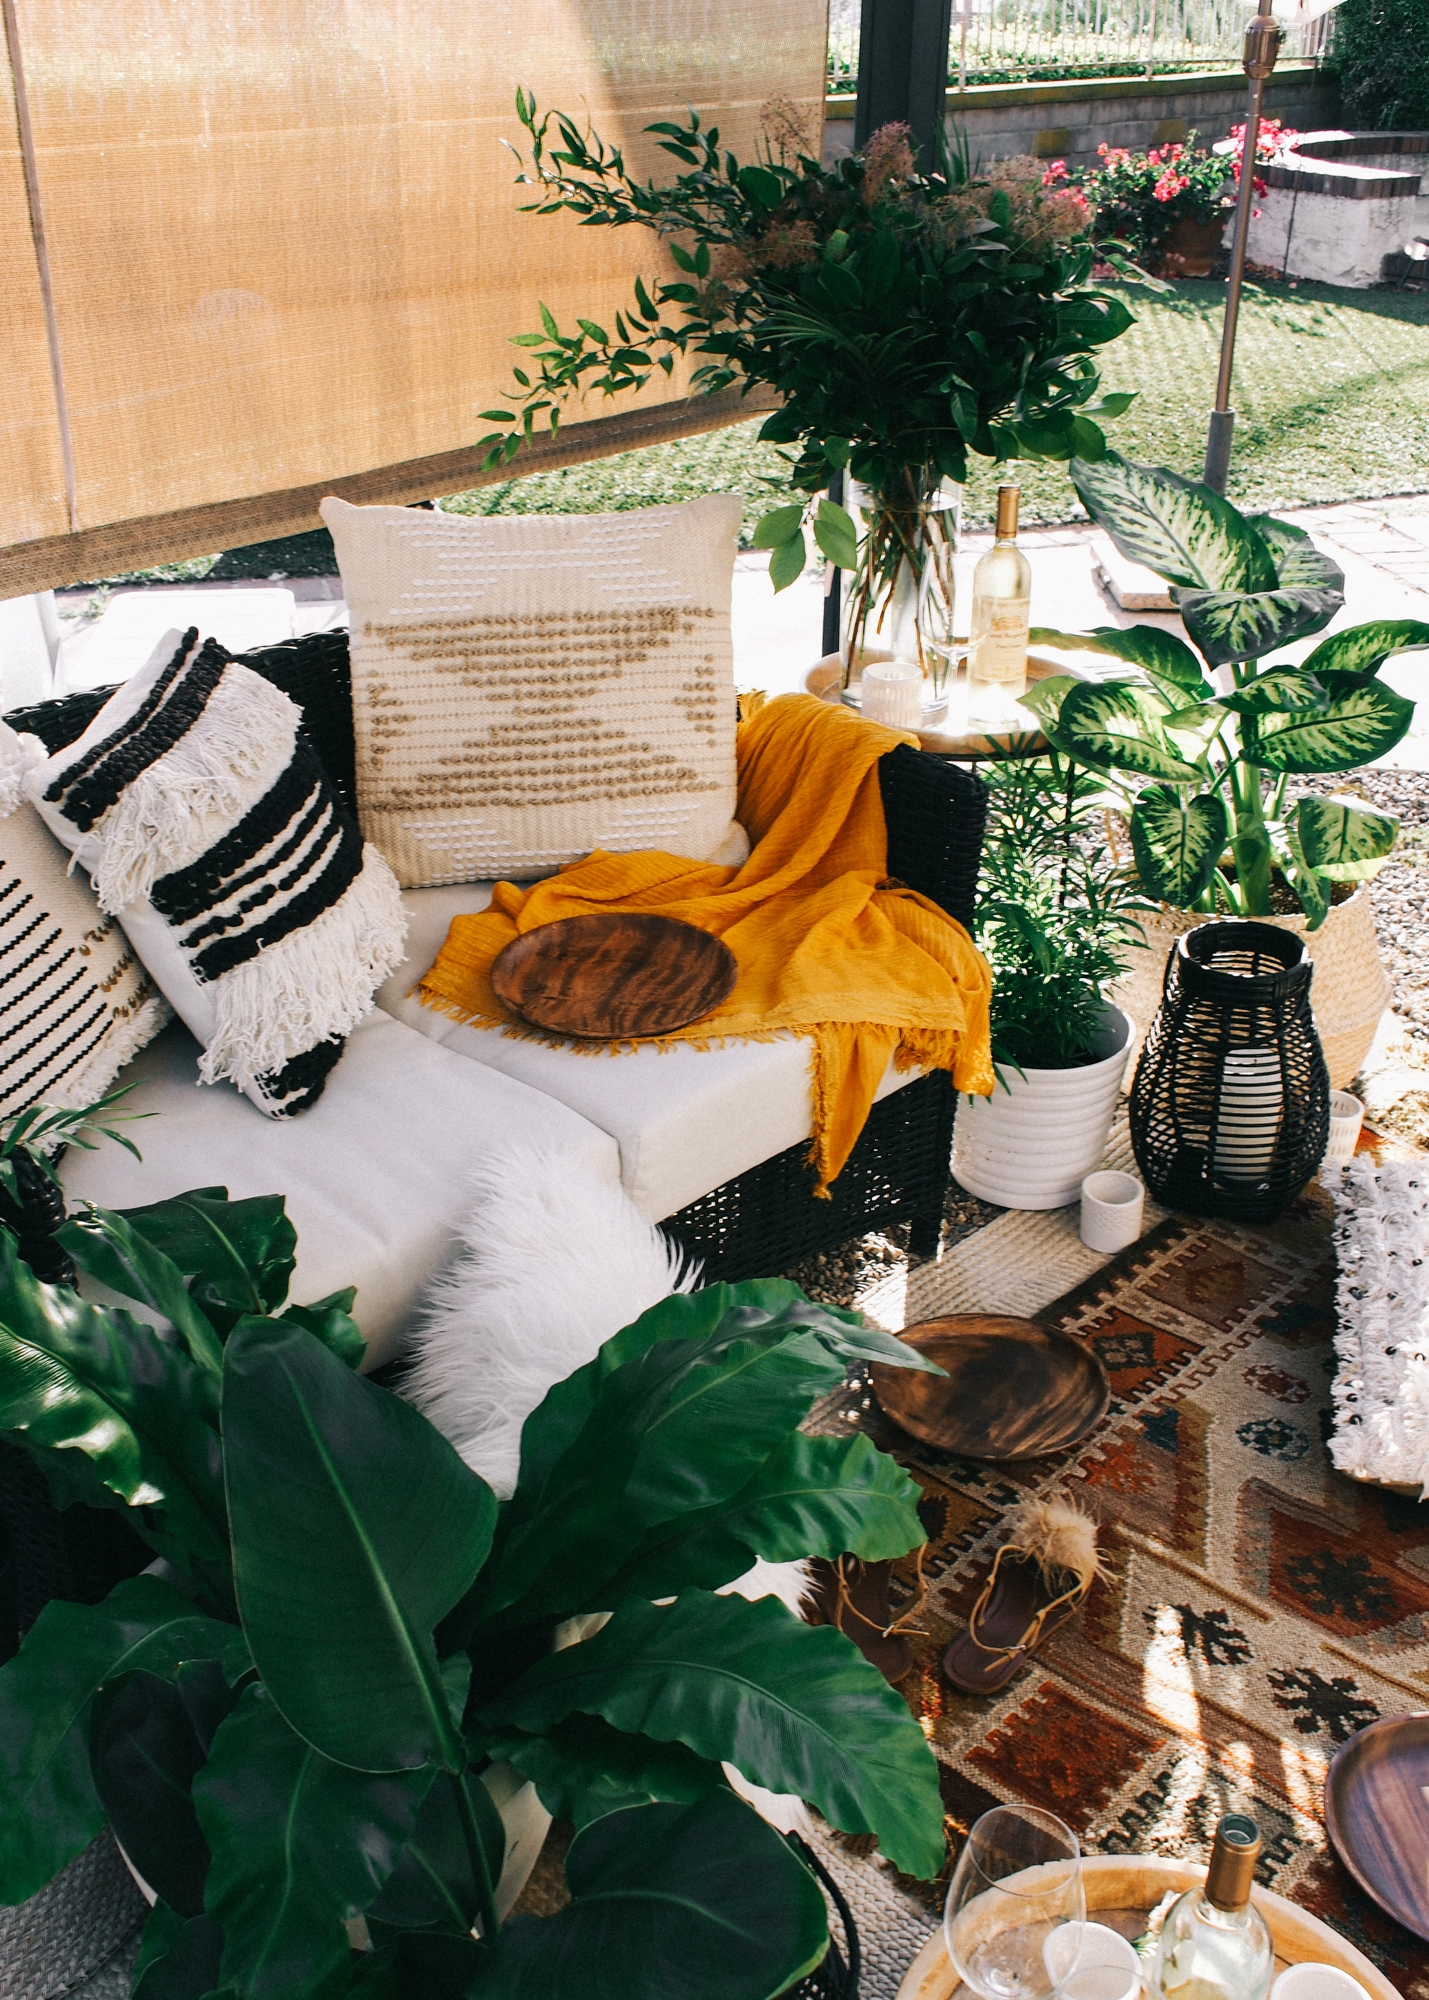 How to get your outdoor area ready for hosting get togethers in no time | A Fabulous Fete